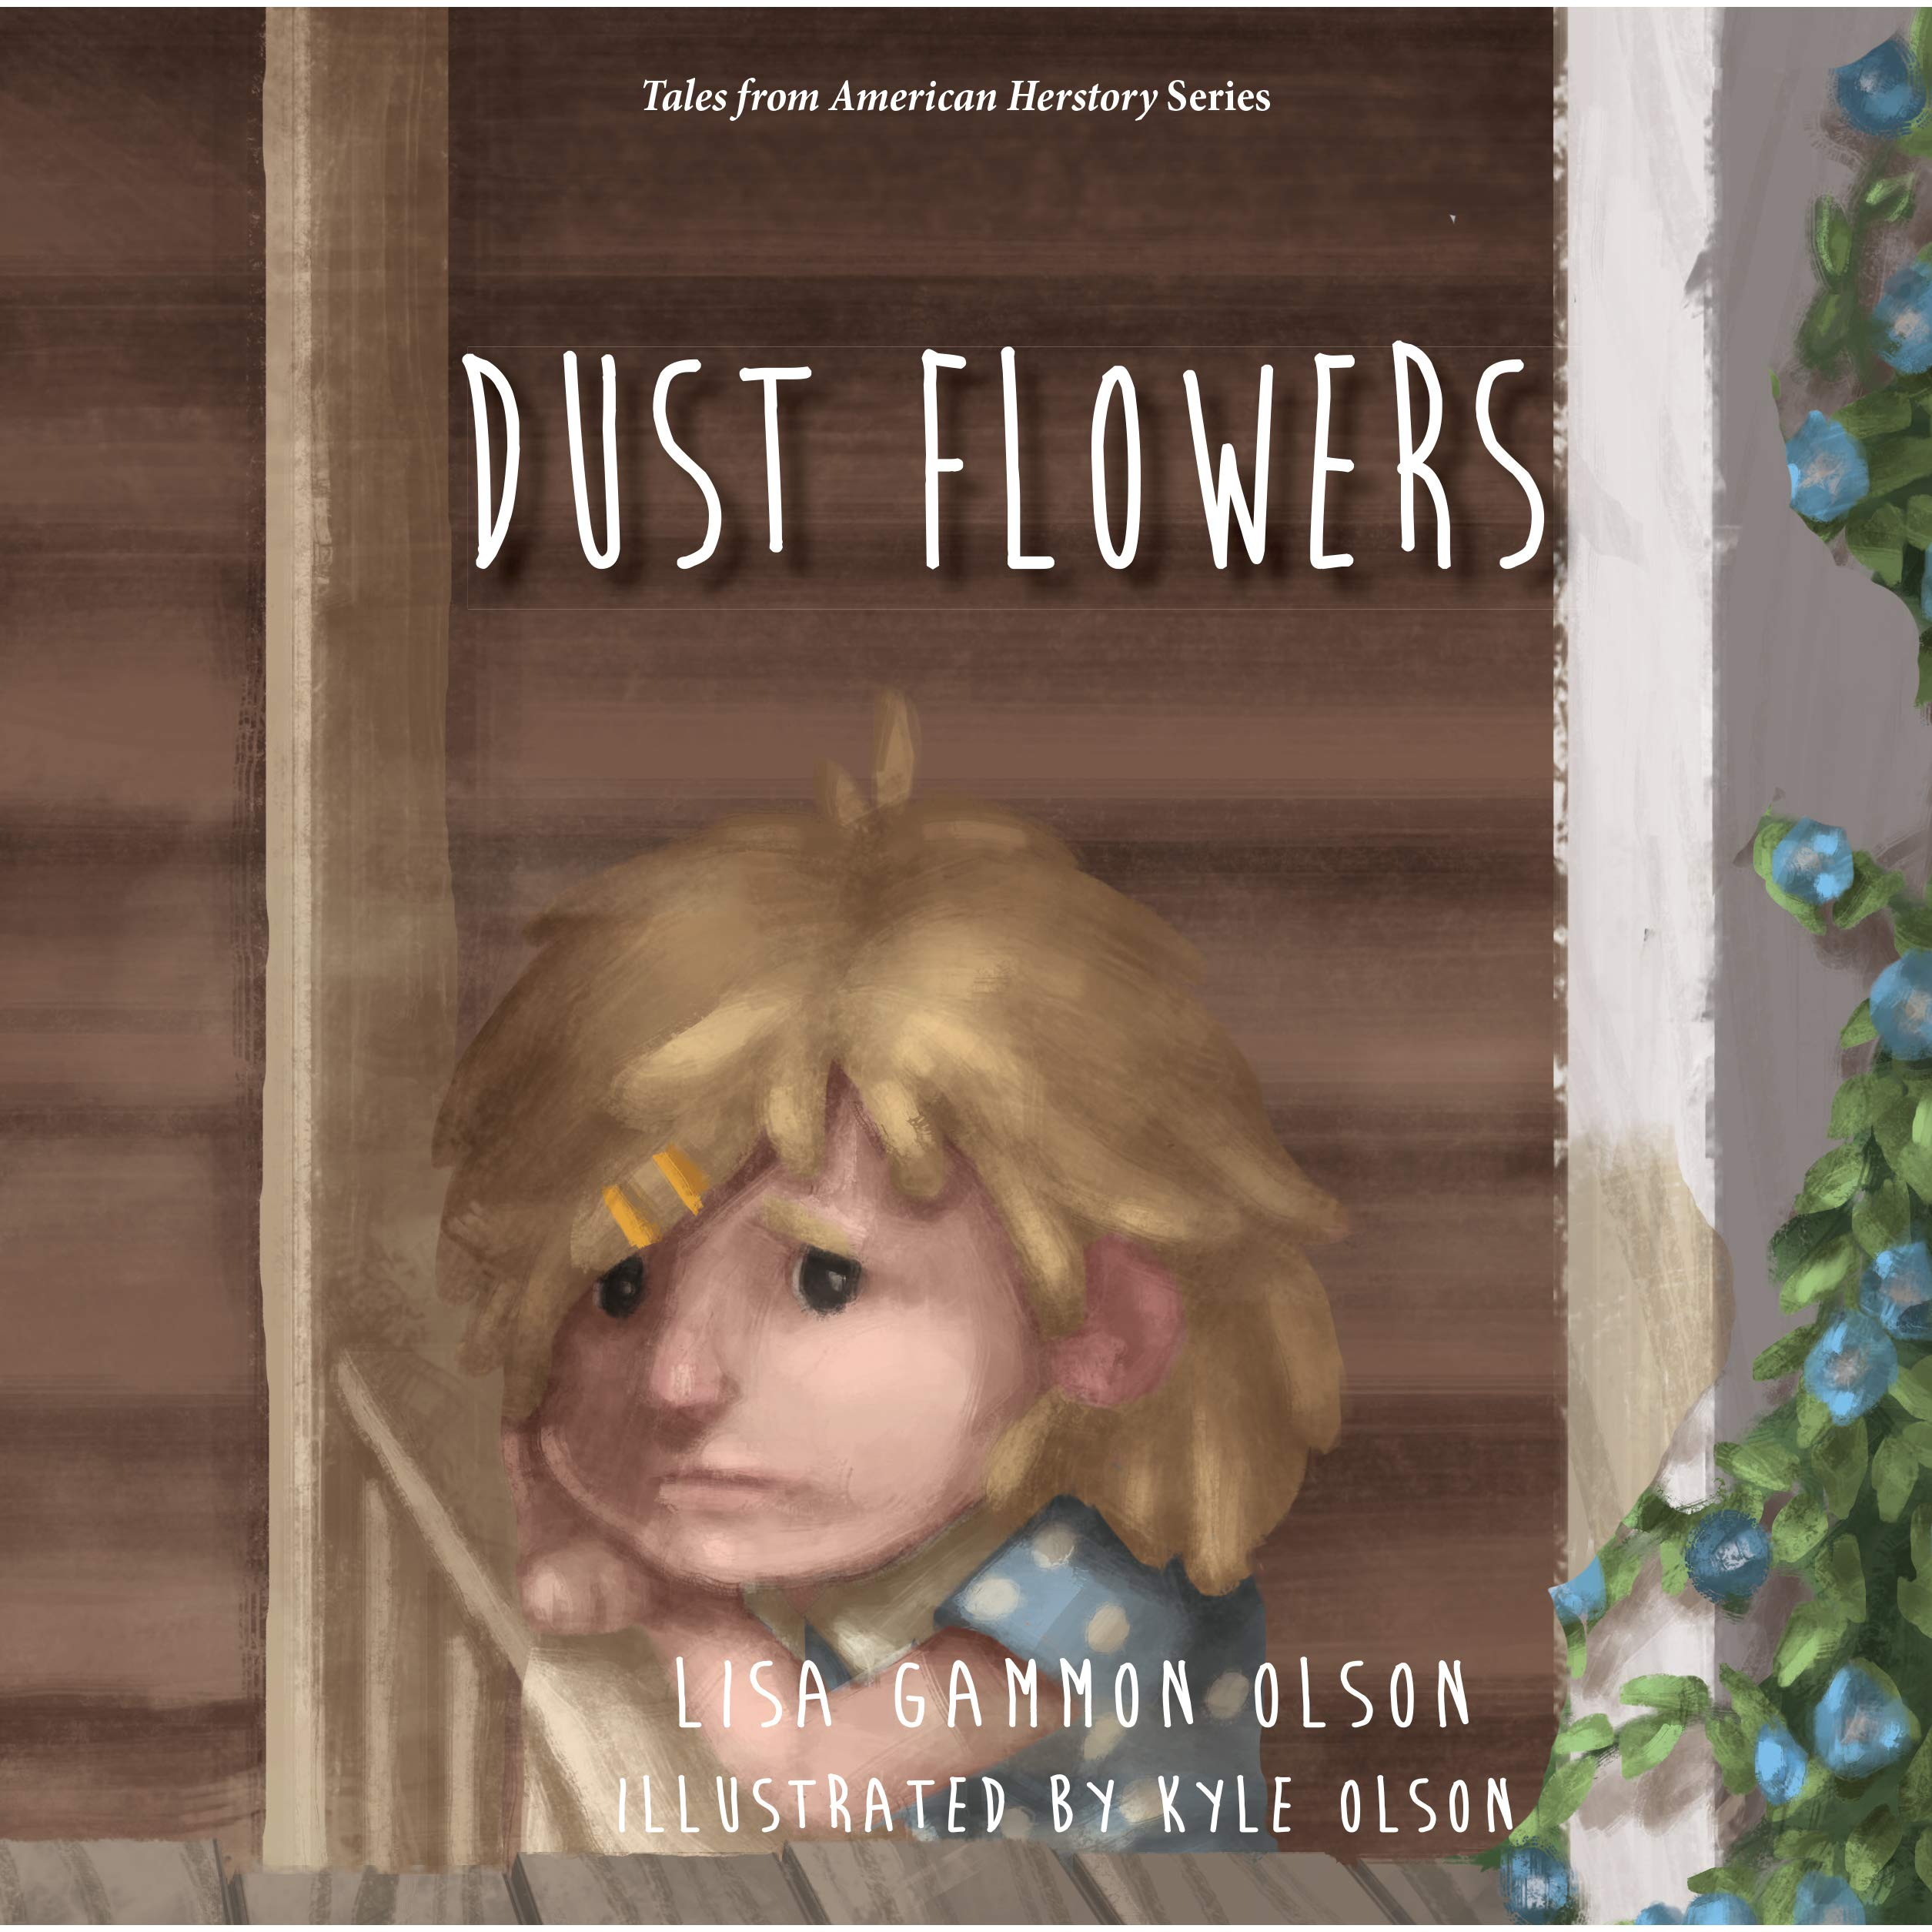 Dust Flowers by Lisa Gammon Olson 04-01-17